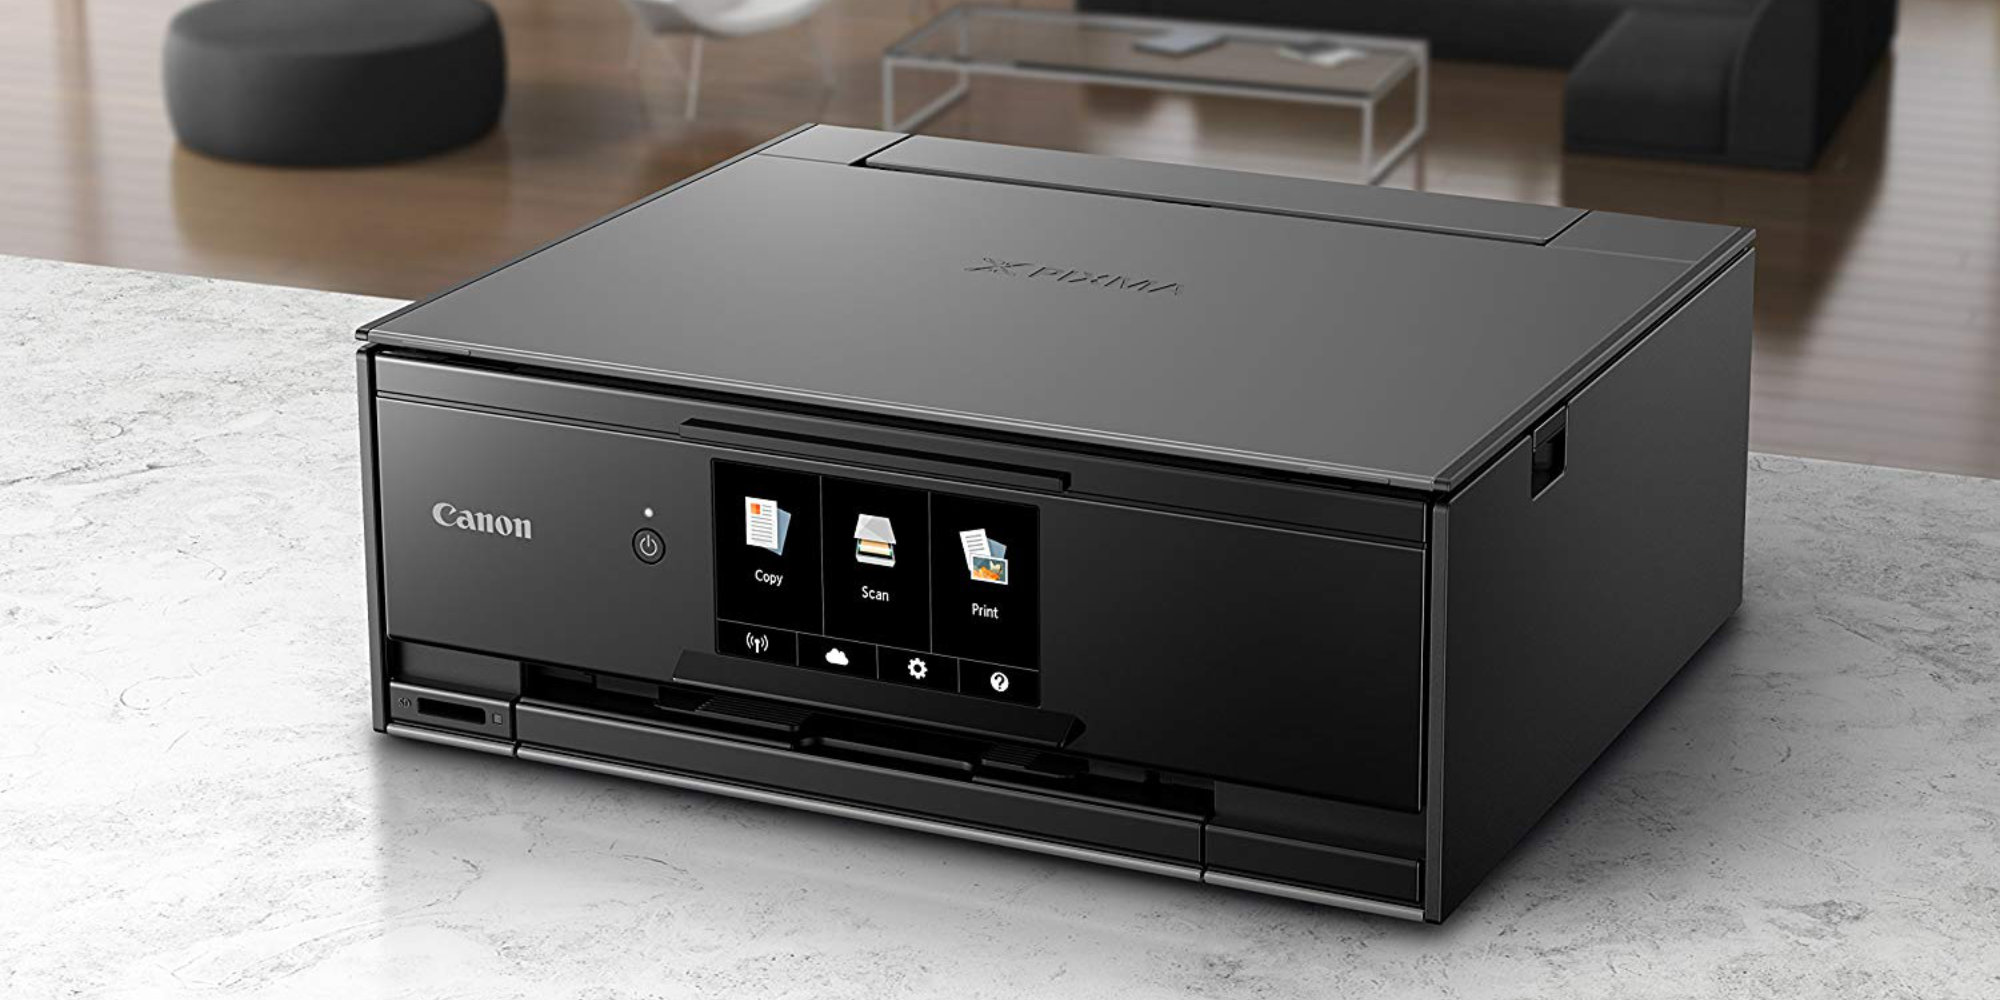 This Canon AiO has AirPrint and is Amazon's best-selling printer: $59.50 shipped (2019 low)